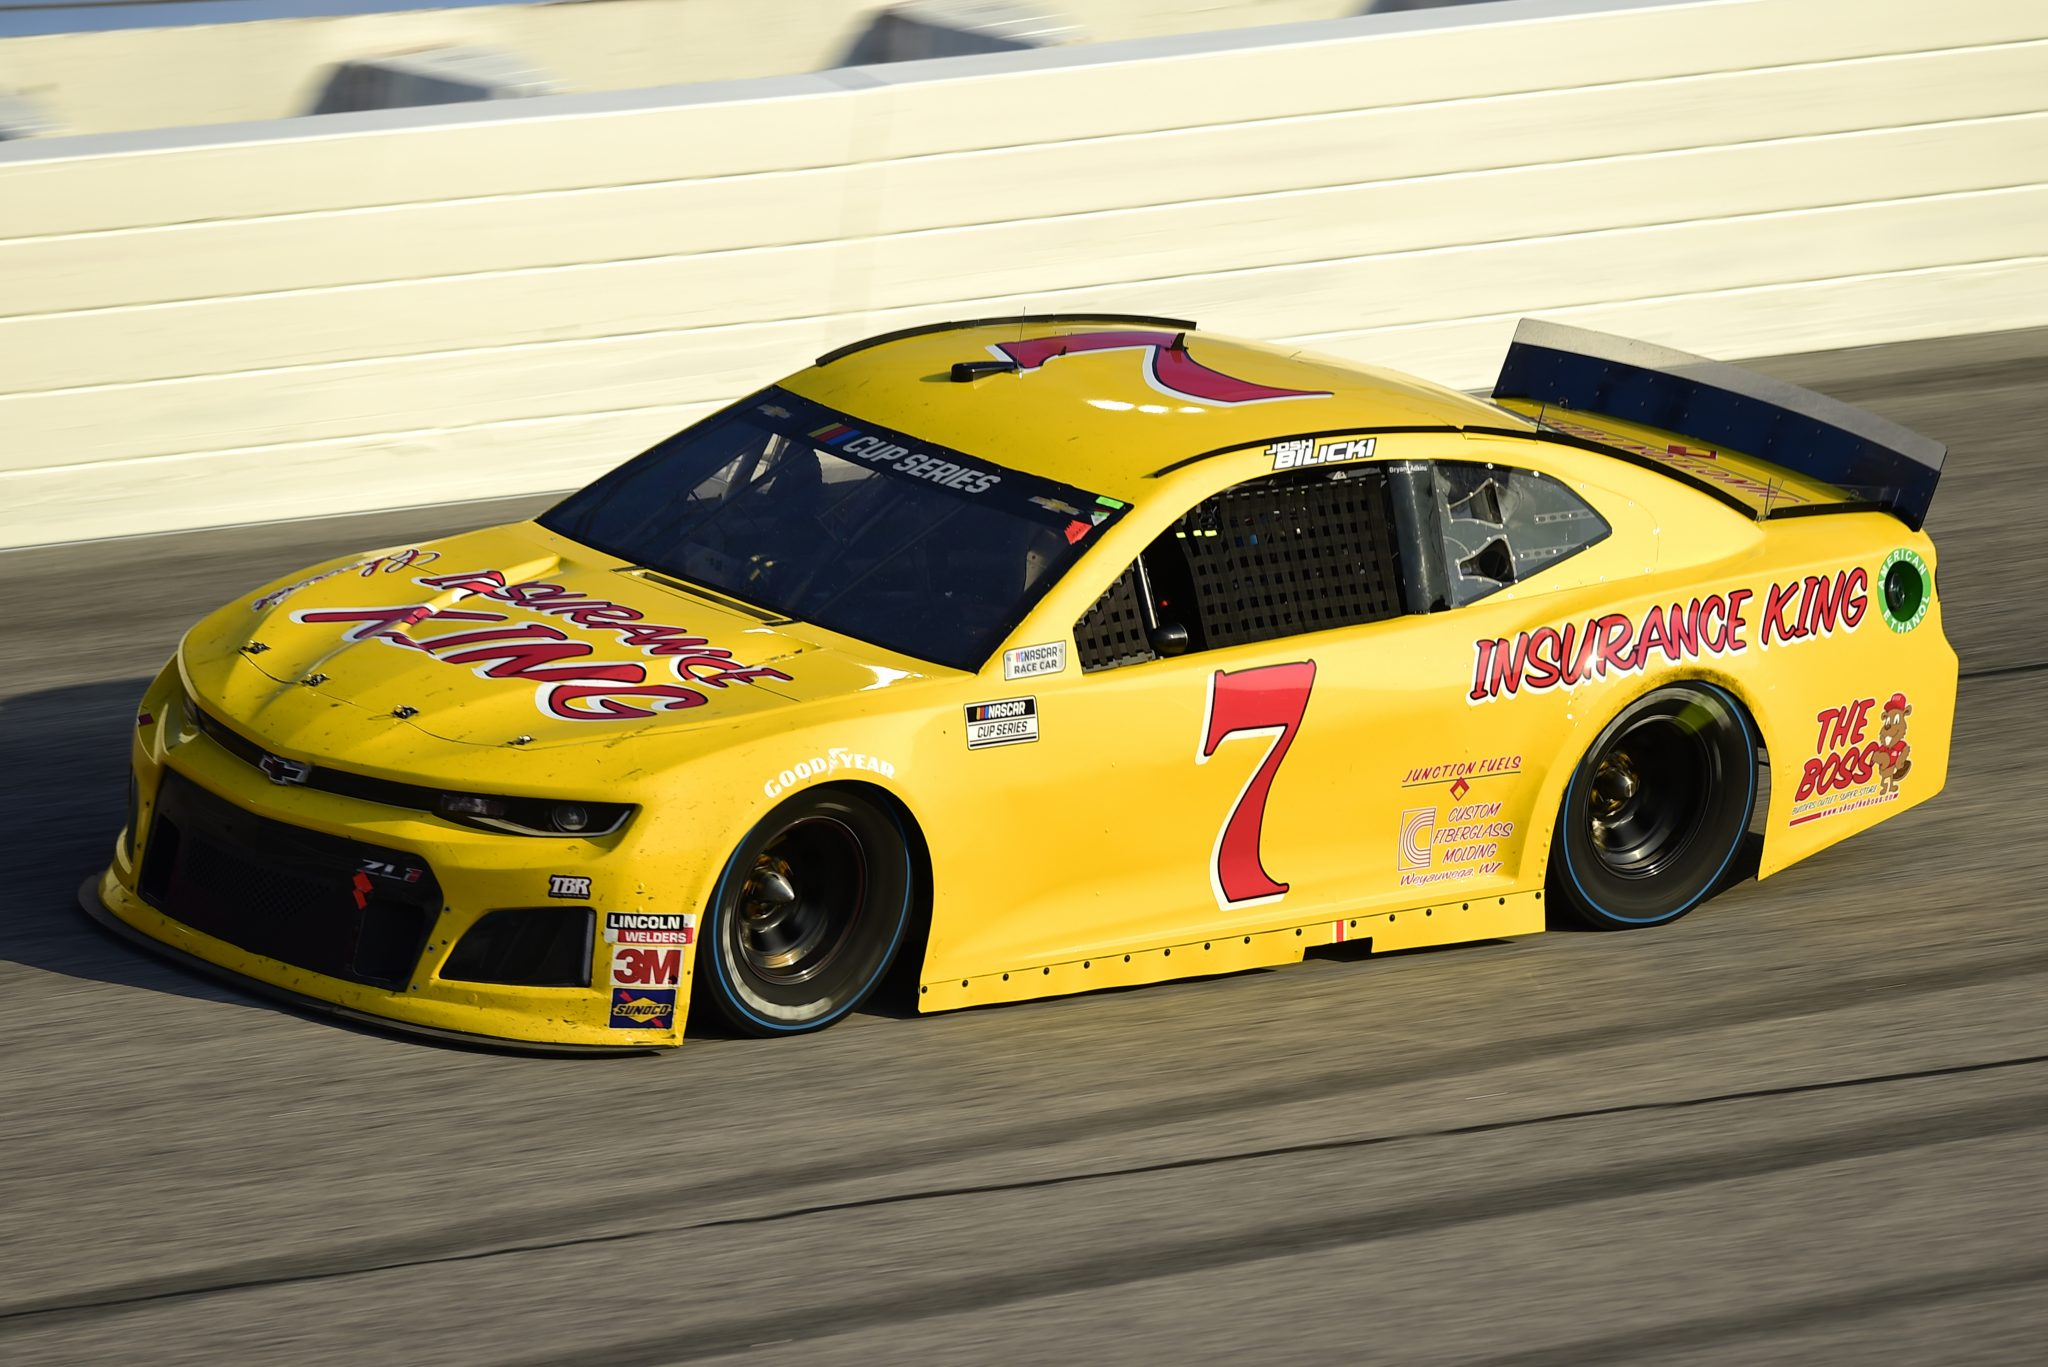 DARLINGTON, SOUTH CAROLINA - SEPTEMBER 06: Josh Bilicki, driver of the #7 Insurance King Chevrolet, drives during the NASCAR Cup Series Cook Out Southern 500 at Darlington Raceway on September 06, 2020 in Darlington, South Carolina. (Photo by Jared C. Tilton/Getty Images) | Getty Images